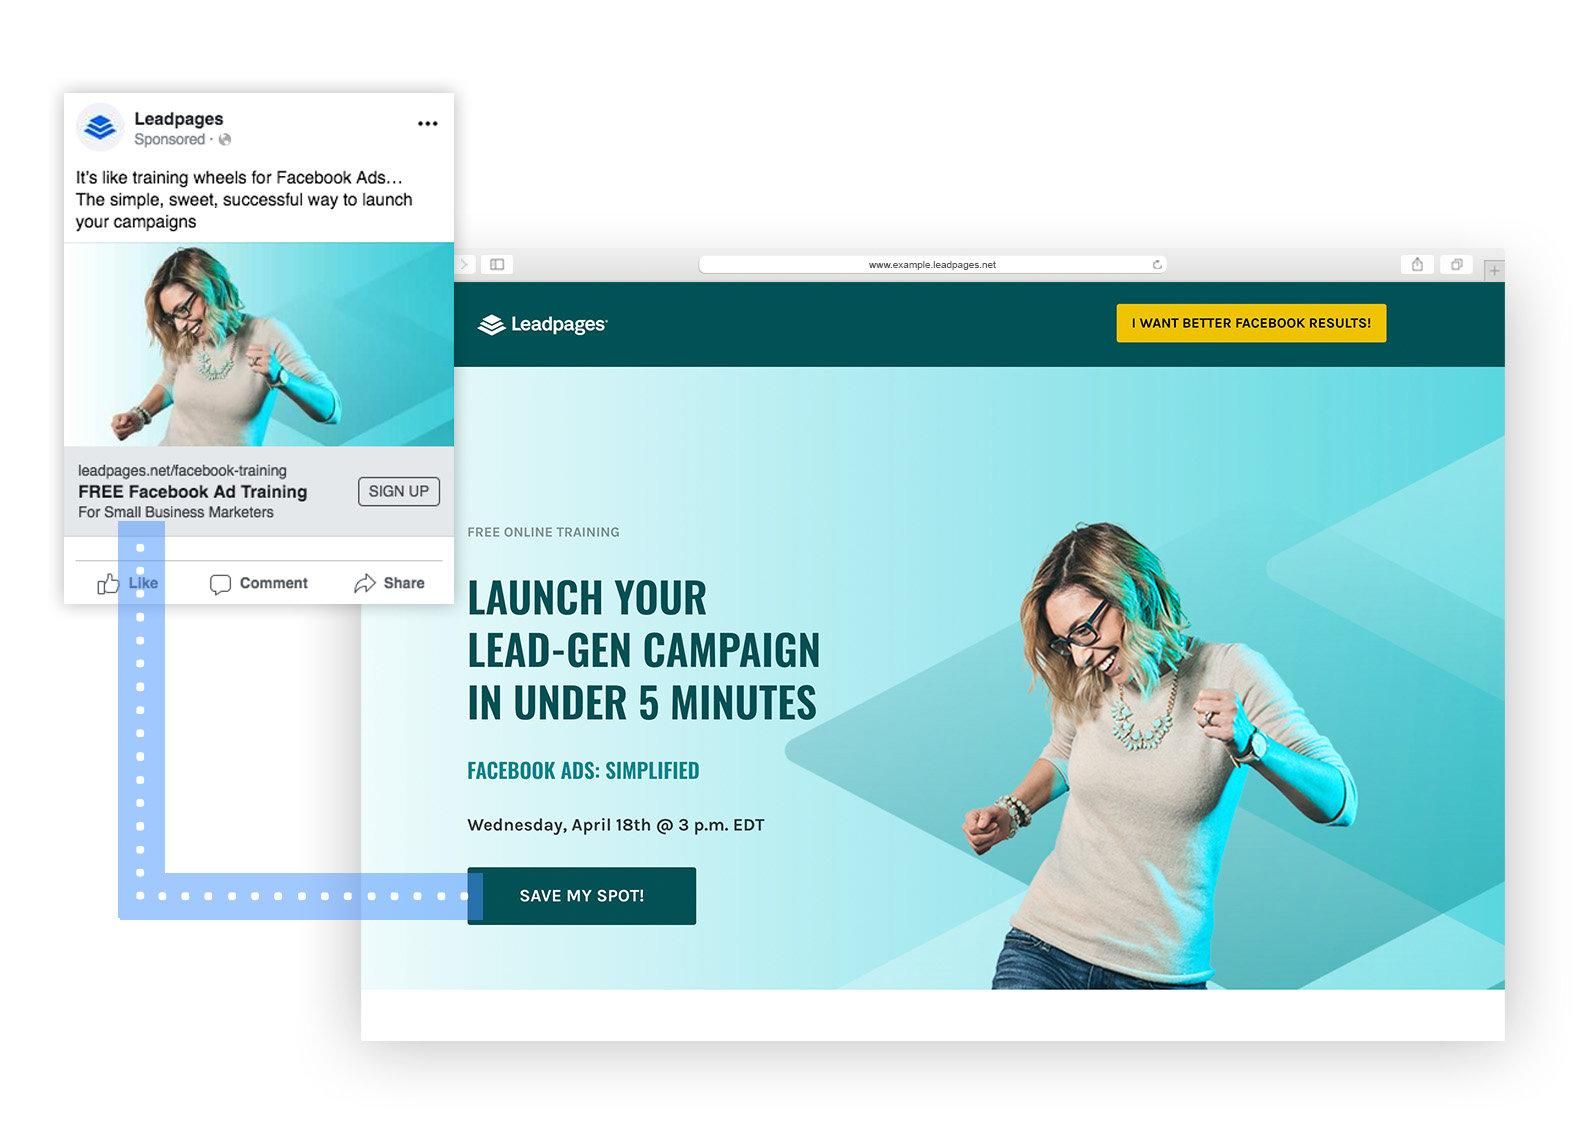 Web advertising and landing page